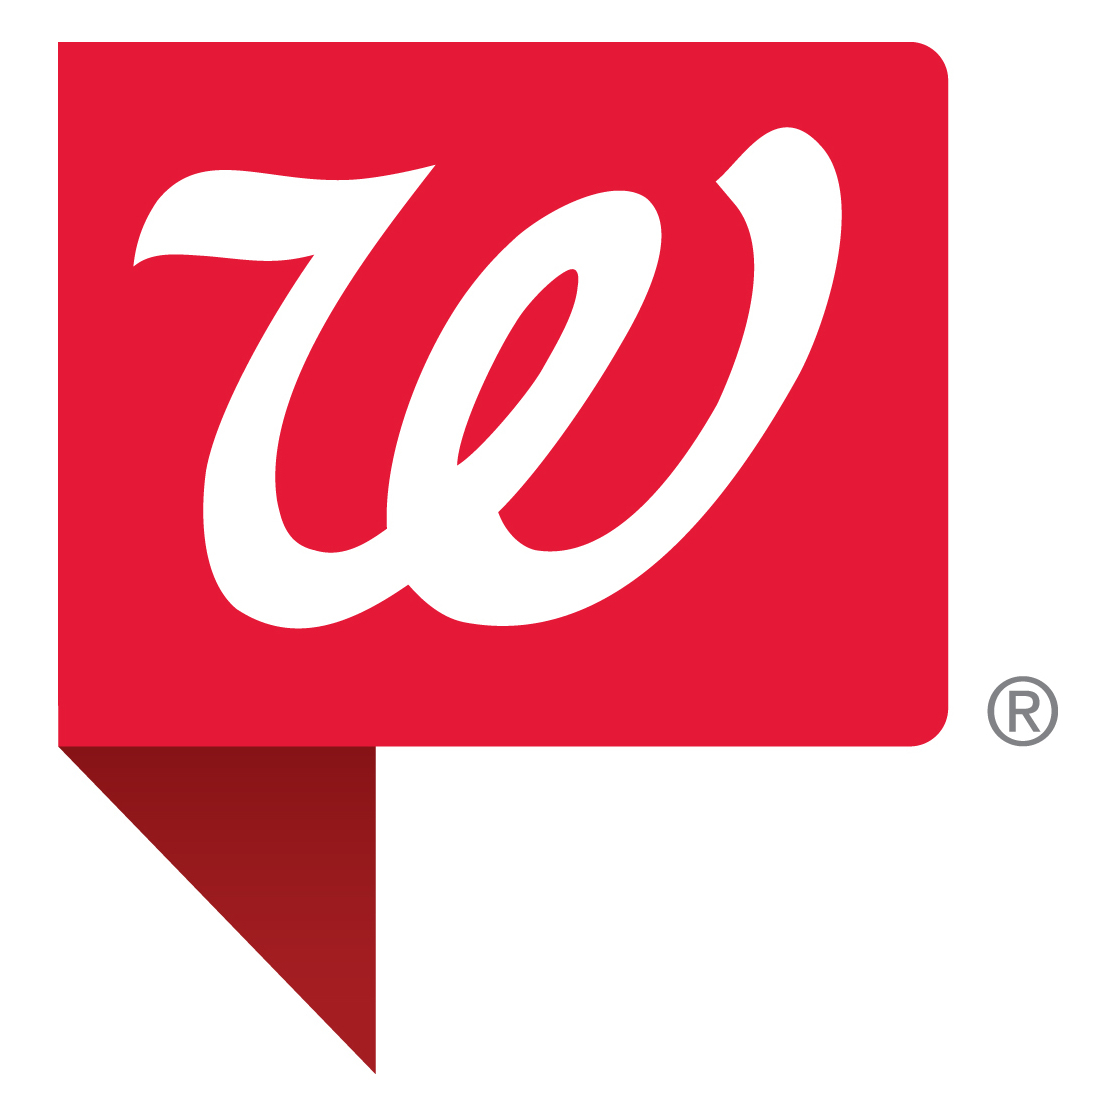 Walgreens Pharmacy at Deaconnes Hospital